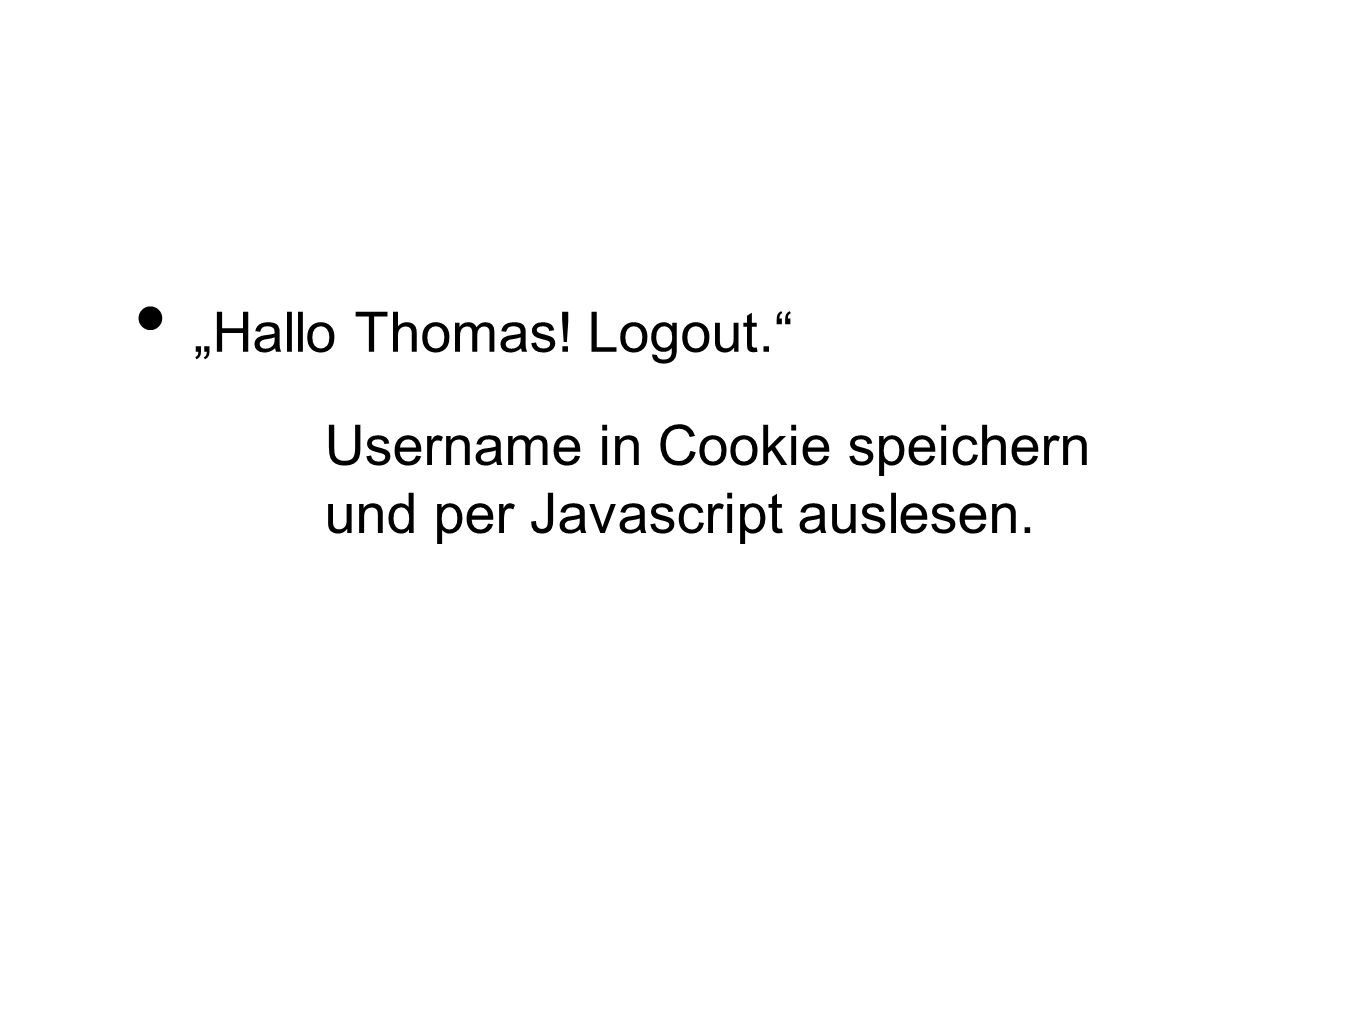 """Hallo Thomas! Logout. Username in Cookie speichern und per Javascript auslesen."